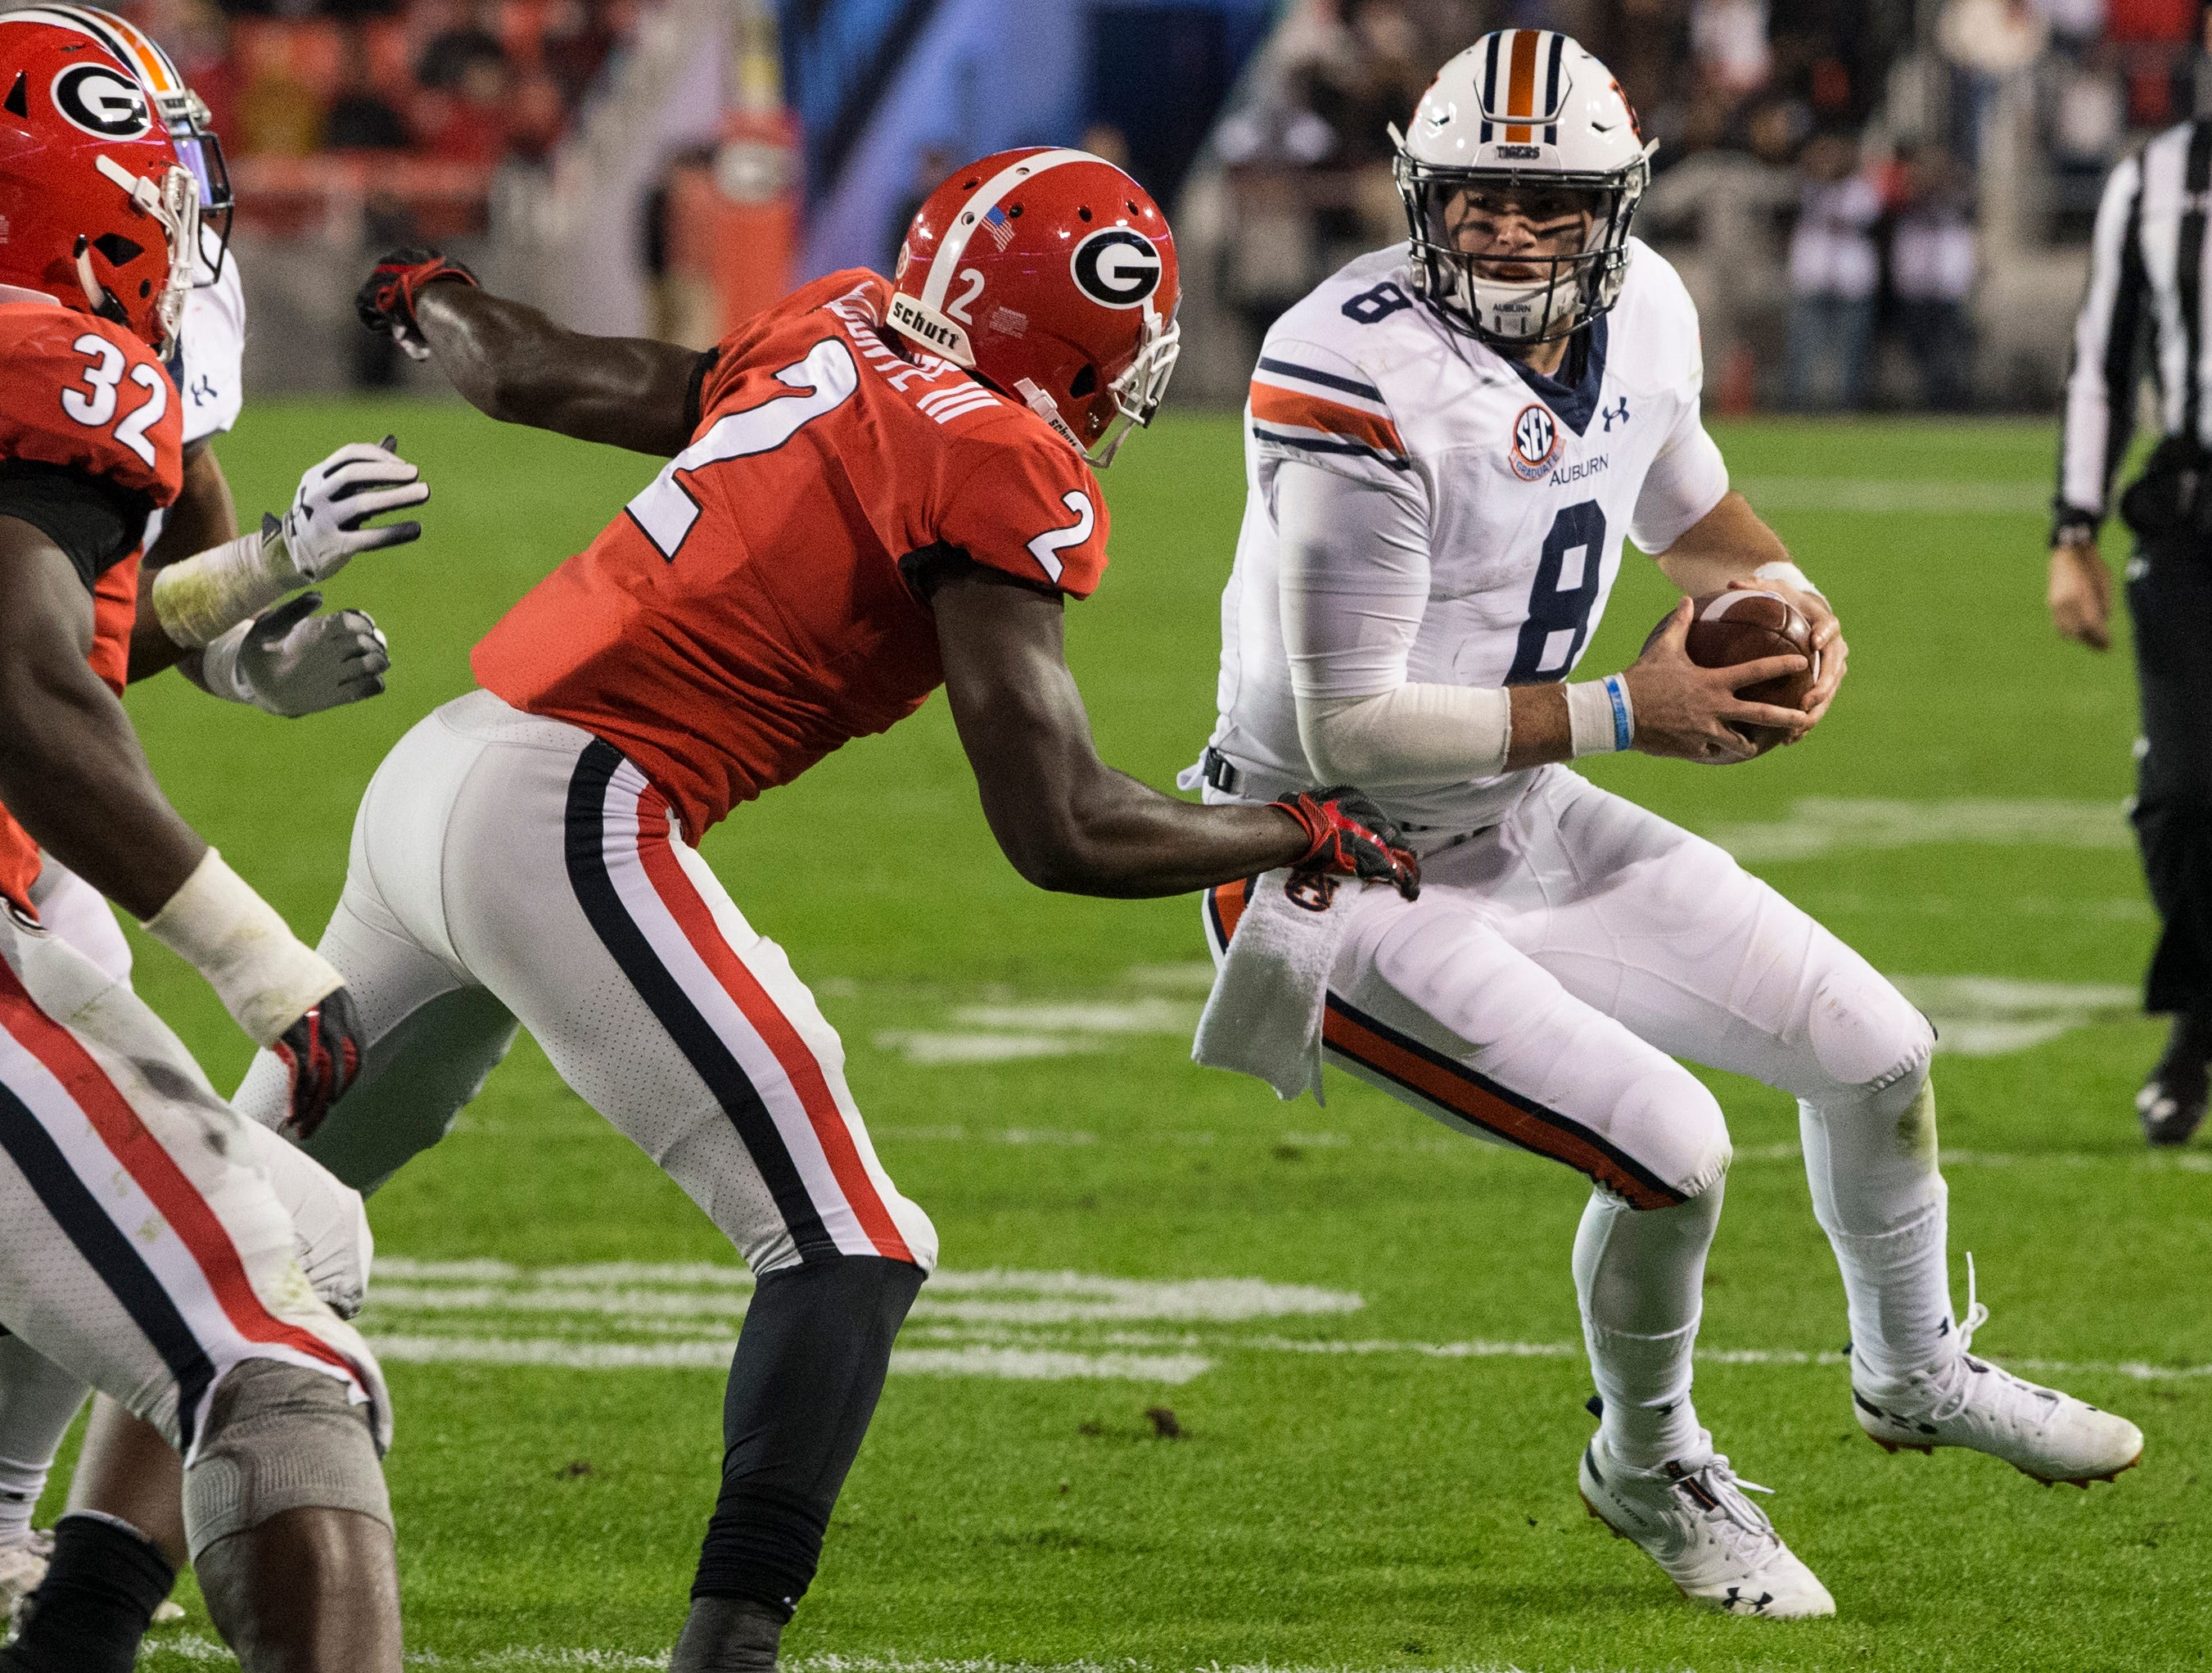 Auburn's rushing offense, defense doom Tigers to another loss in Athens